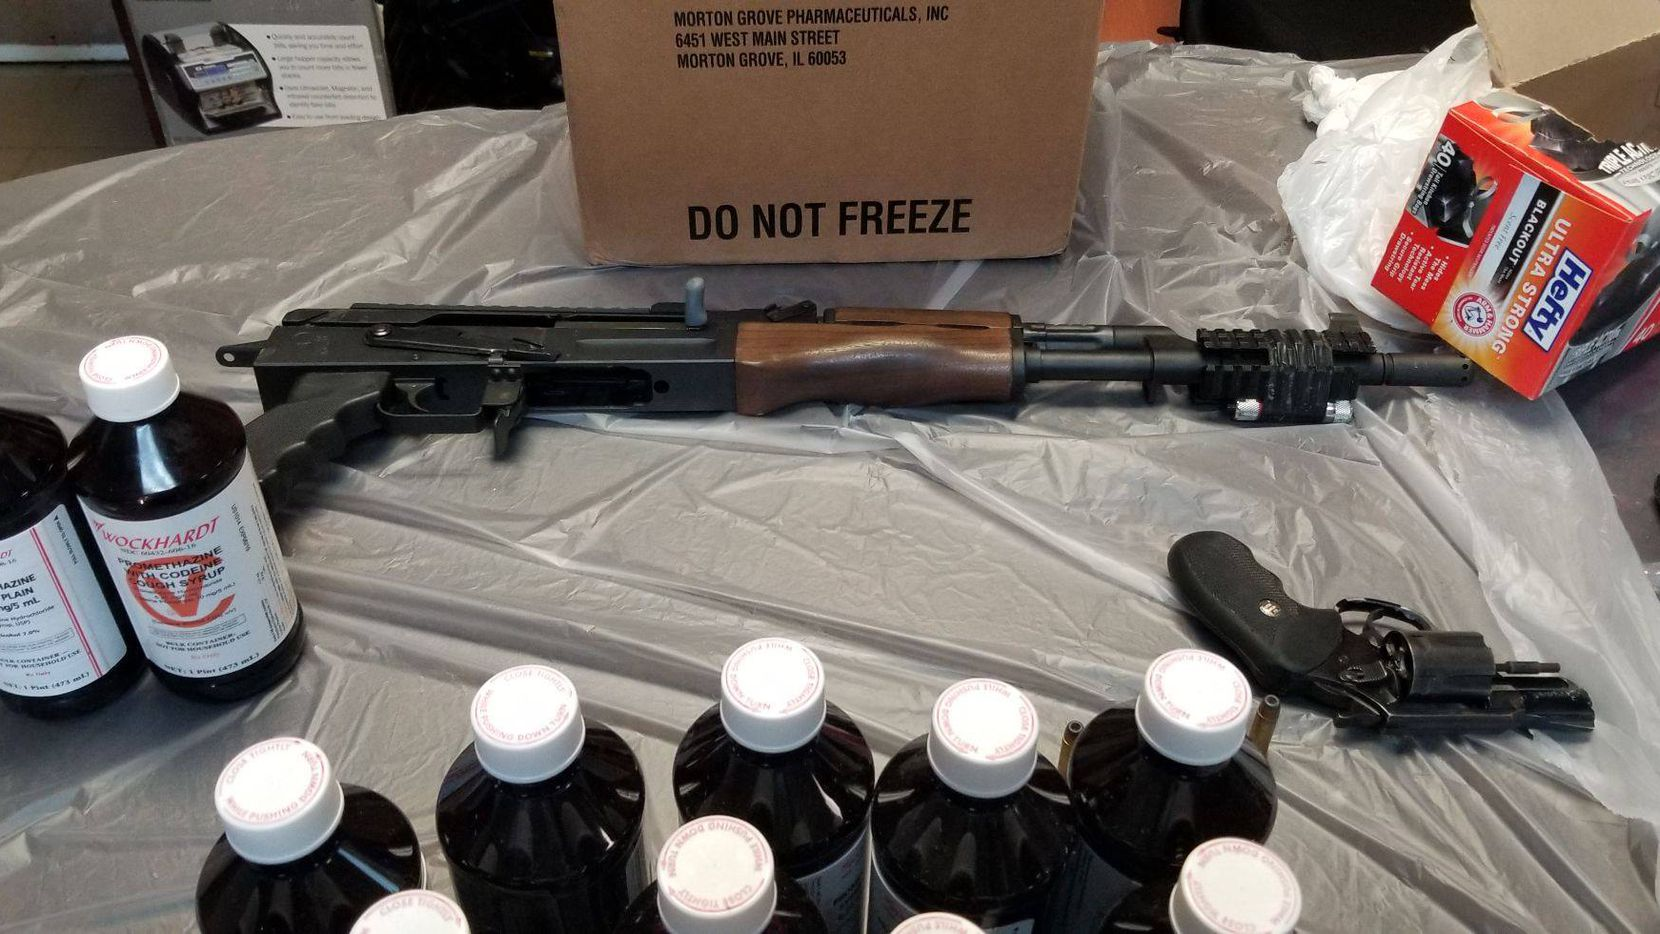 Evidence of illegal drugs and firearms recovered from the home of Anthony James Madrid